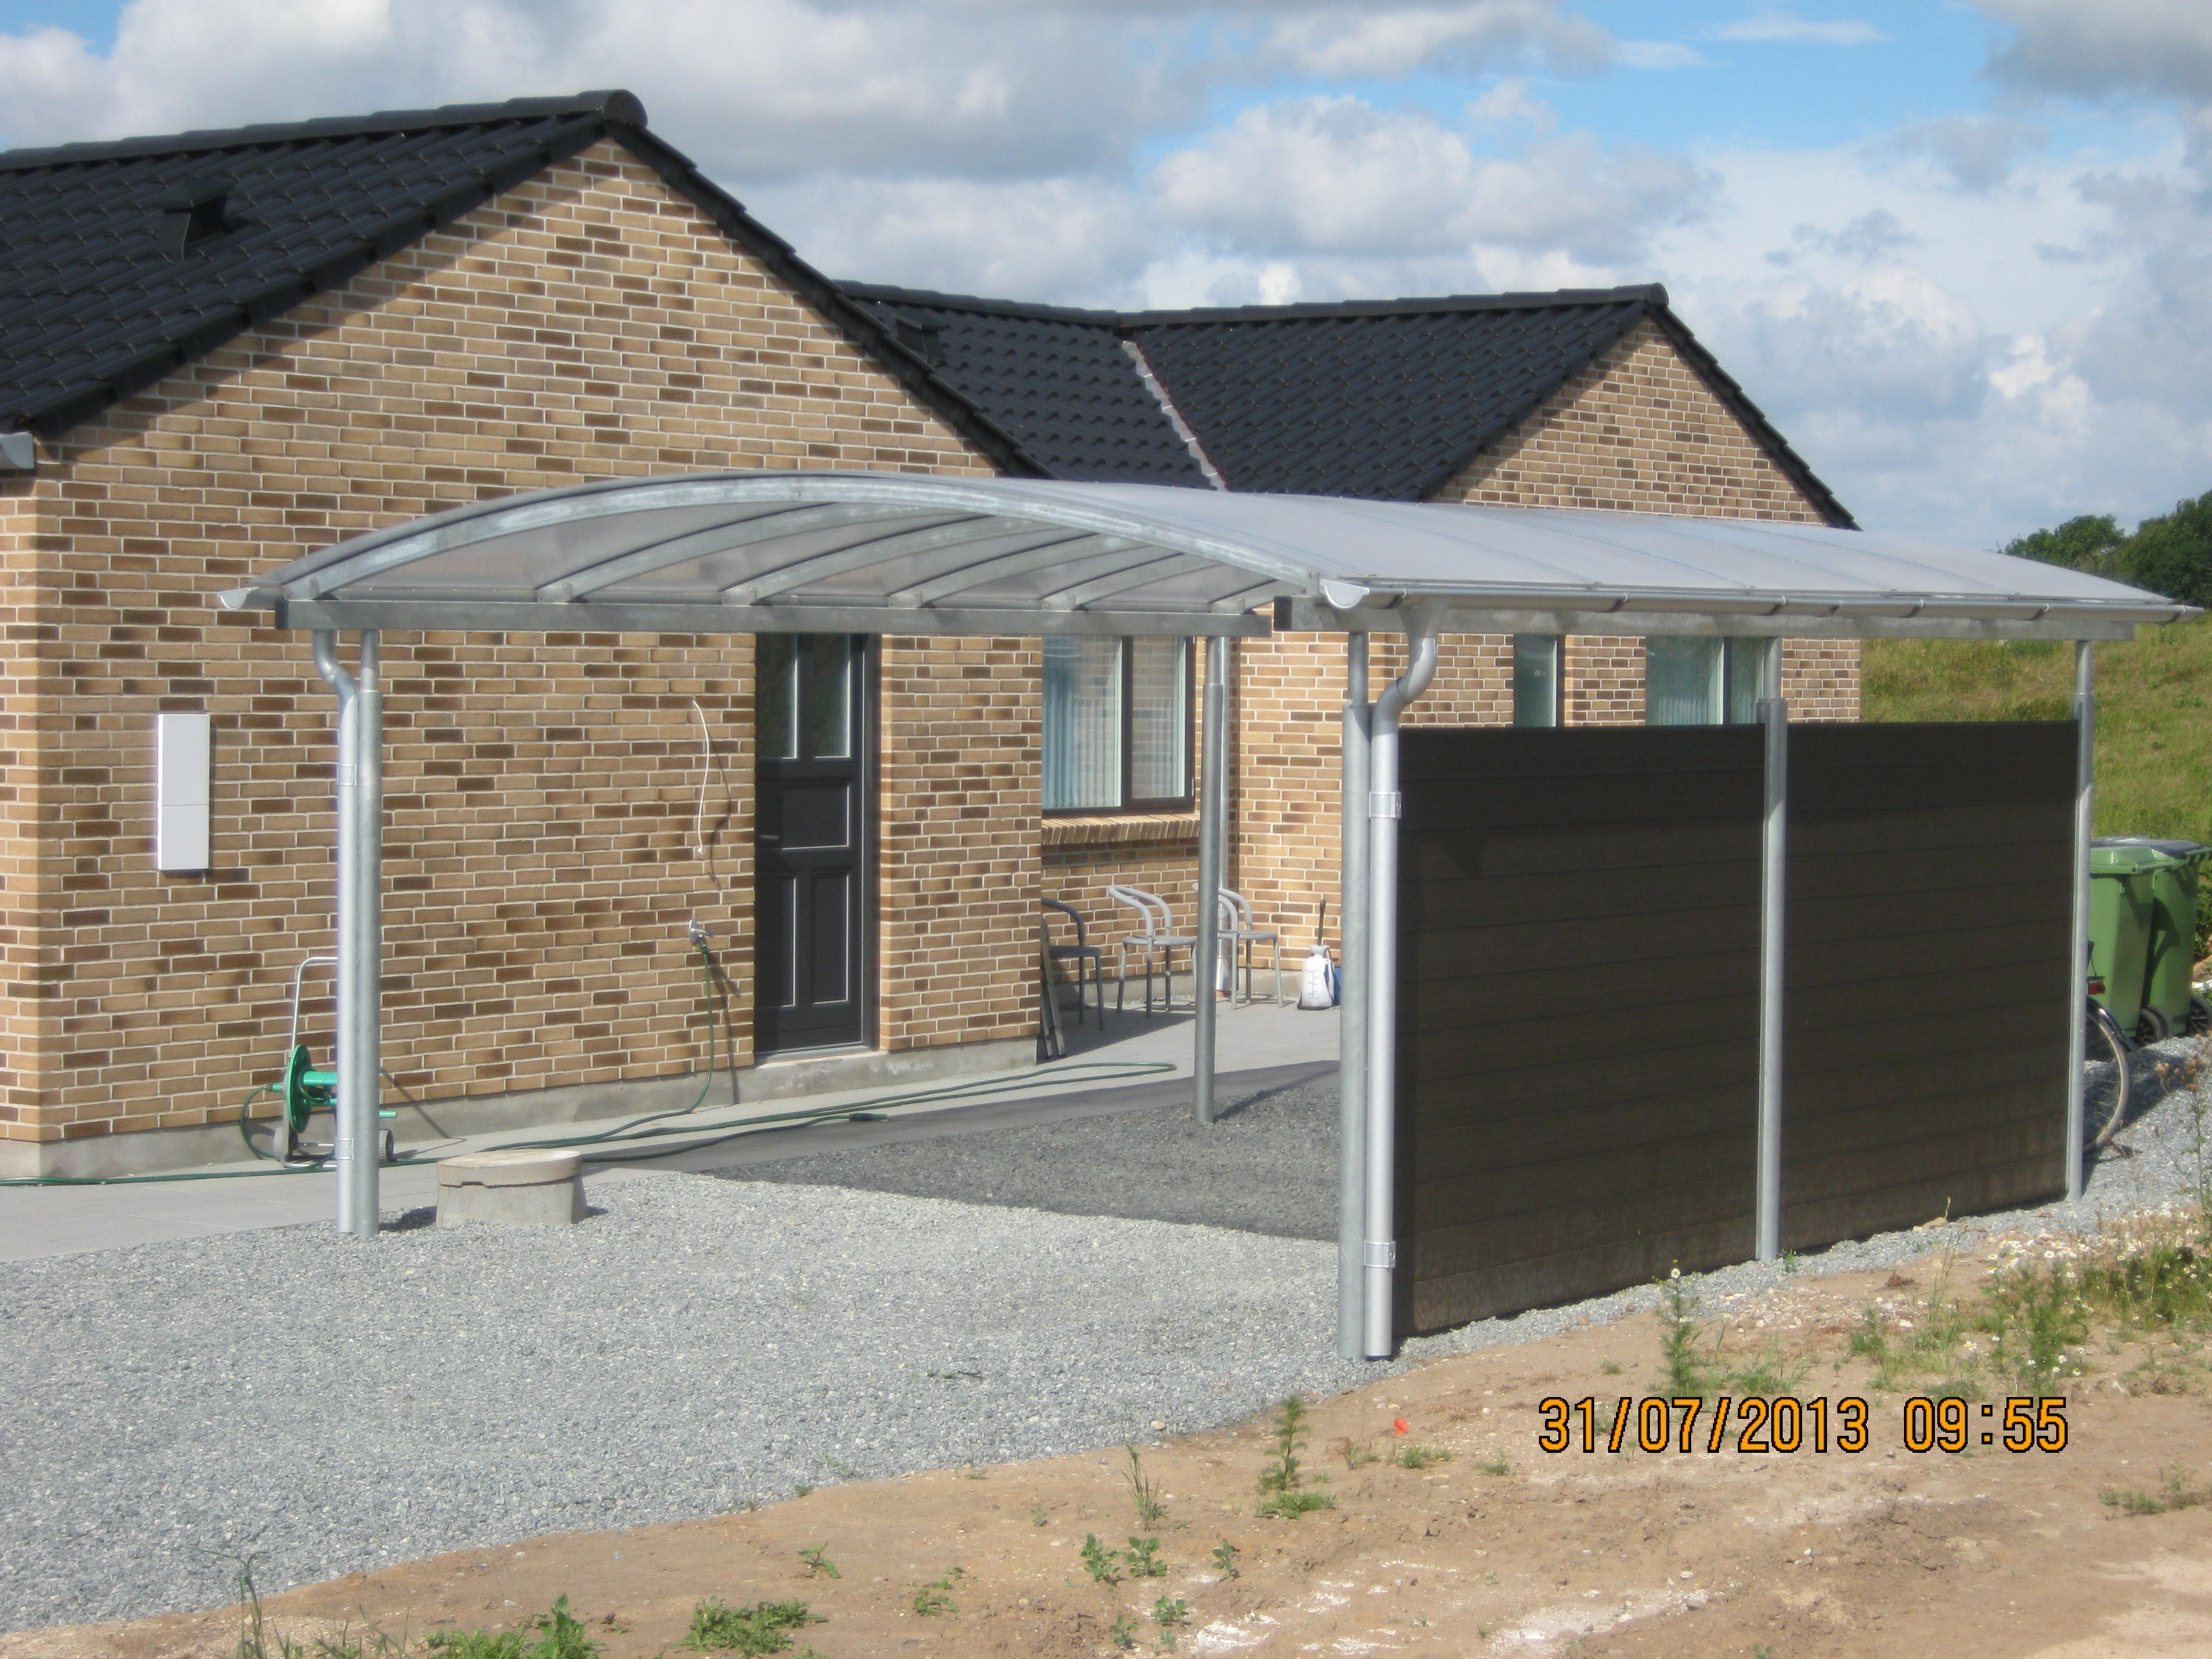 Carport Bauhaus Affordable Carport With Carport Bauhaus Free The